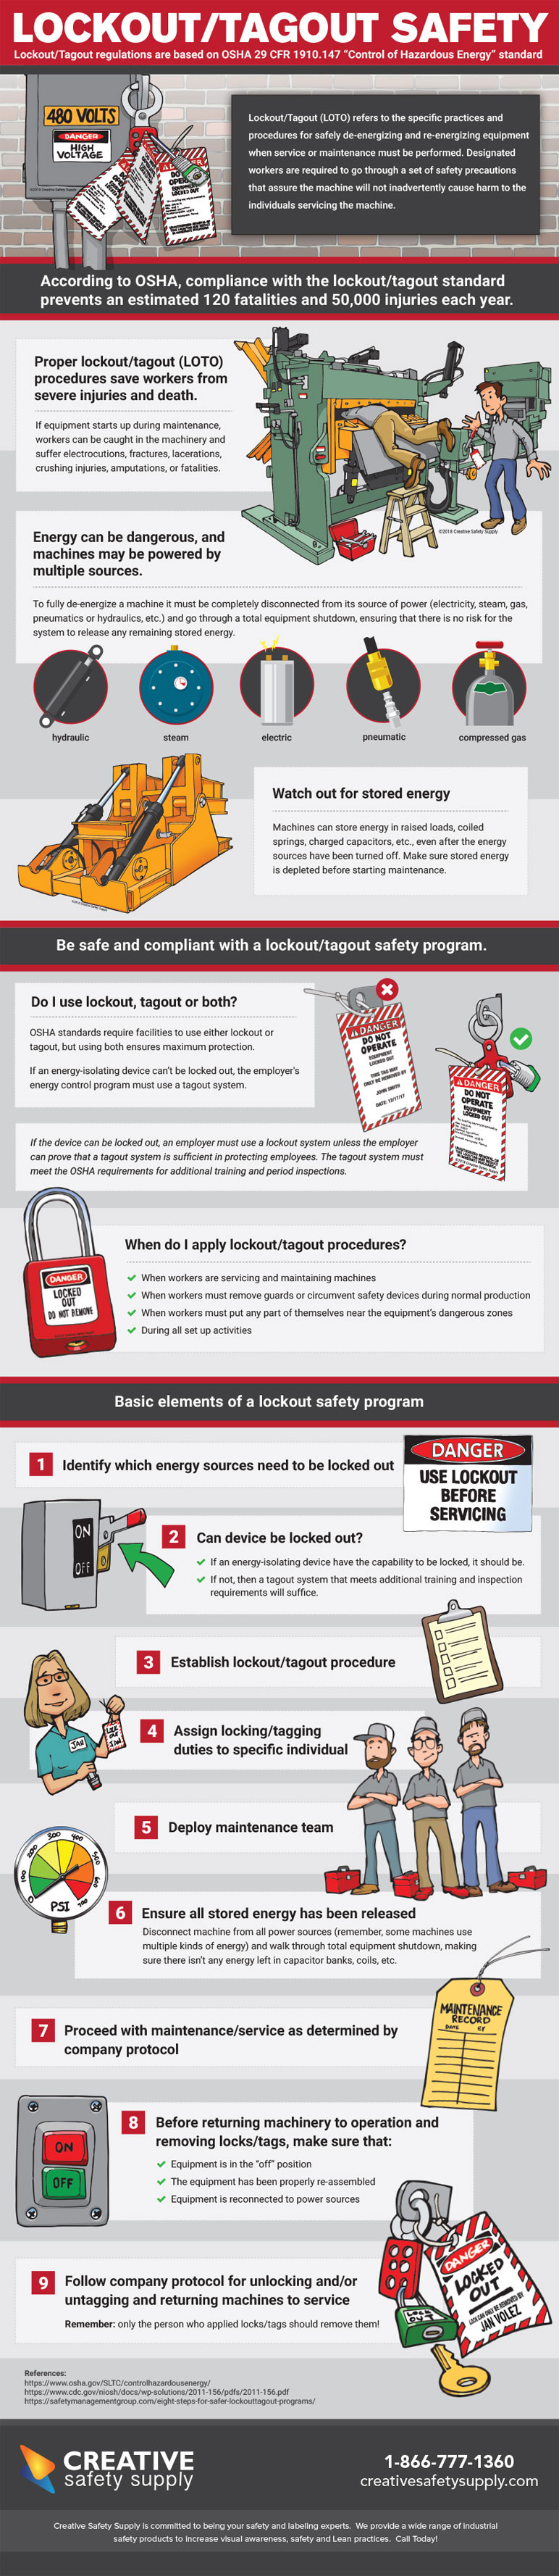 Lockout Tagout Safety Infographic Creative Safety Supply